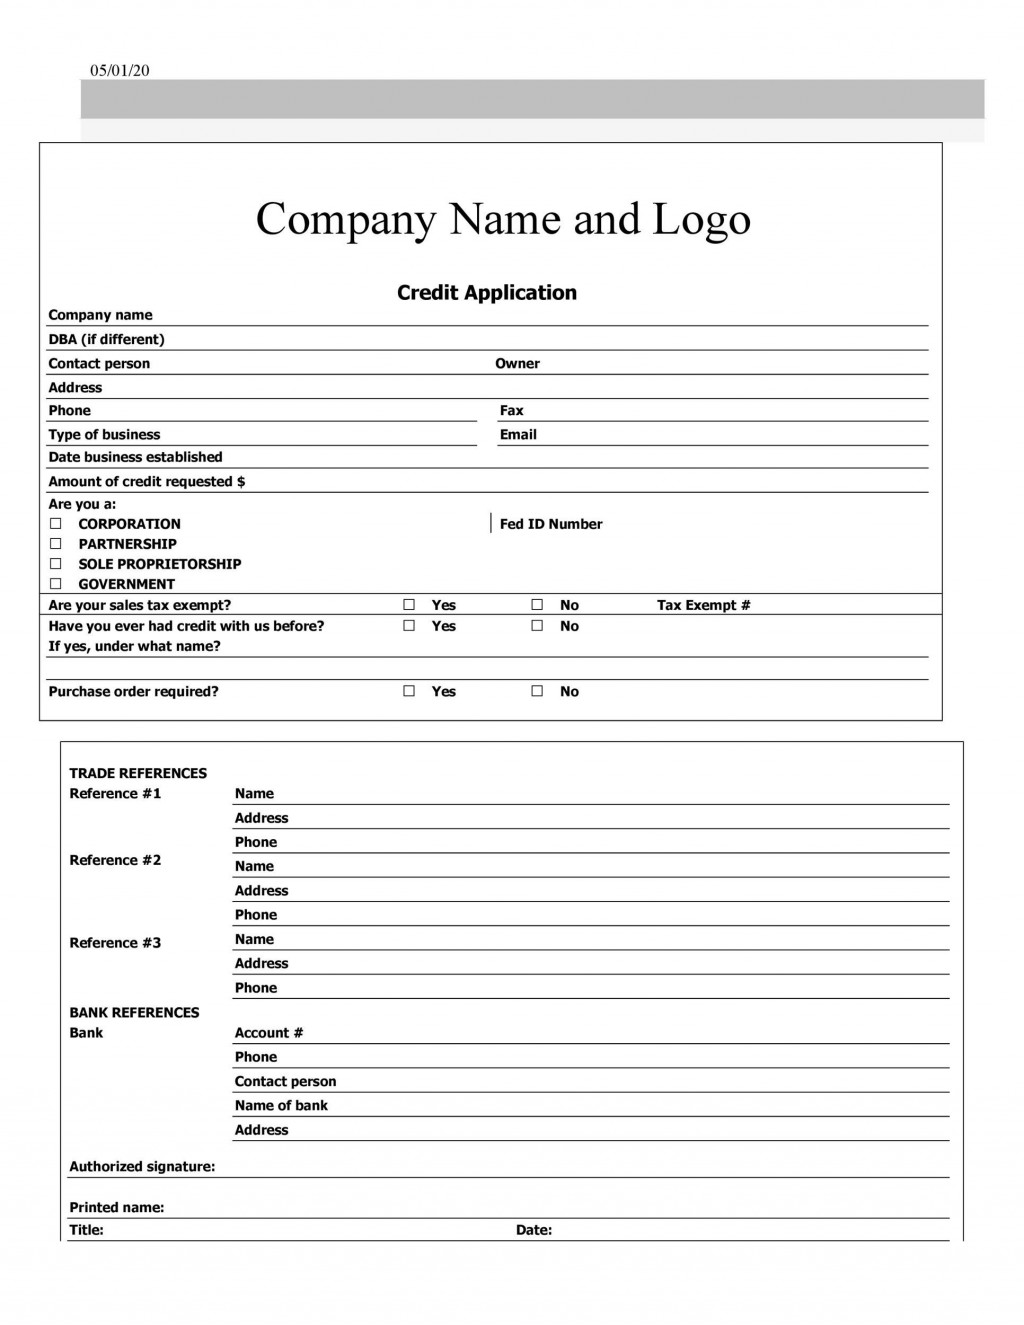 008 Remarkable Busines Credit Application Template South Africa Image  Form Word FreeLarge